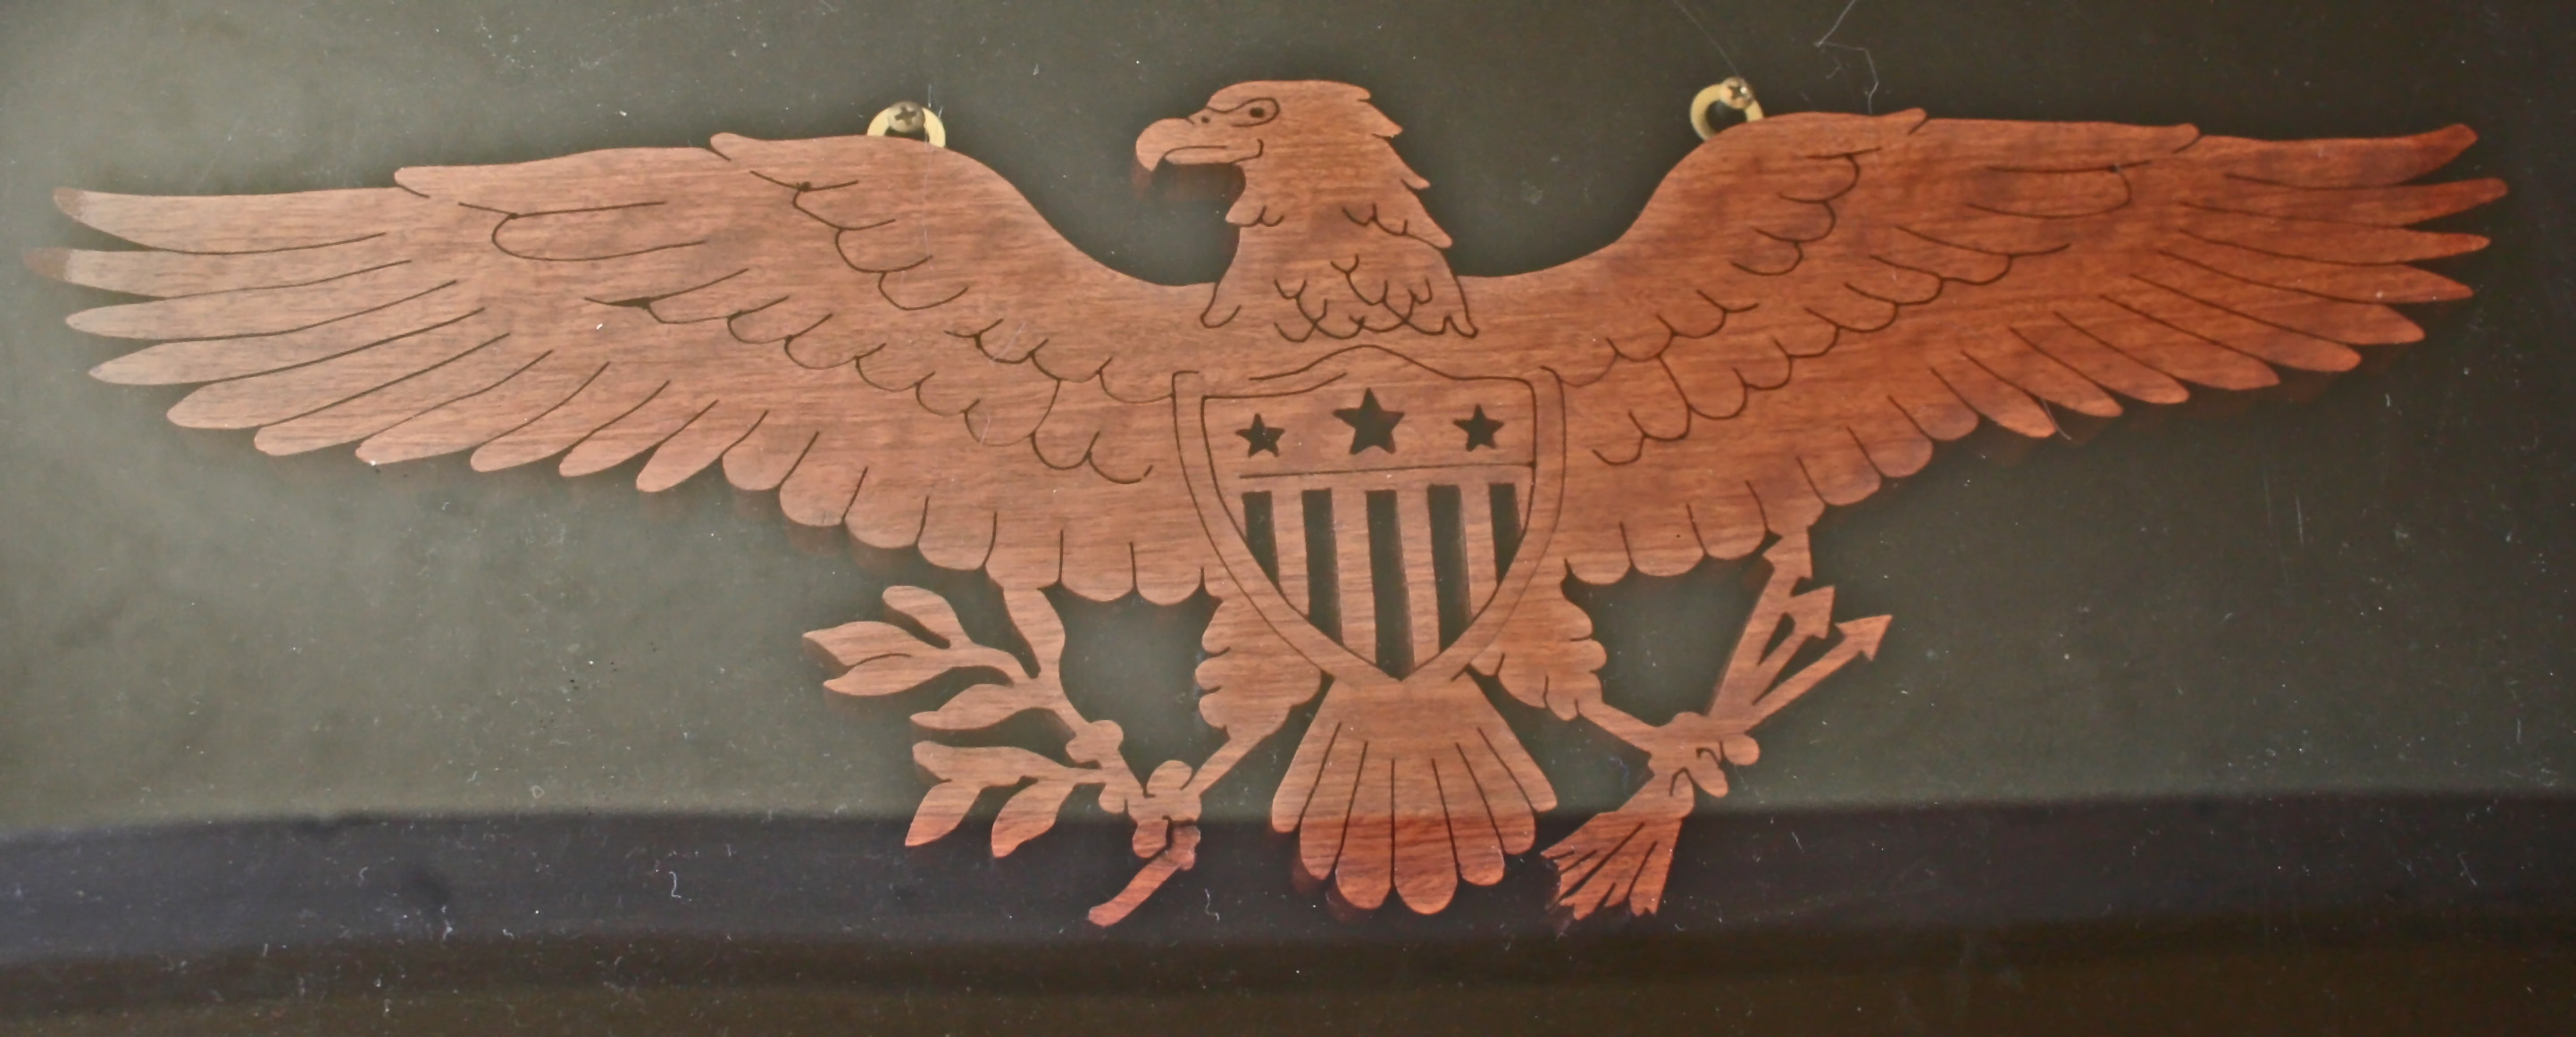 dutch ebaugh carving, 2015